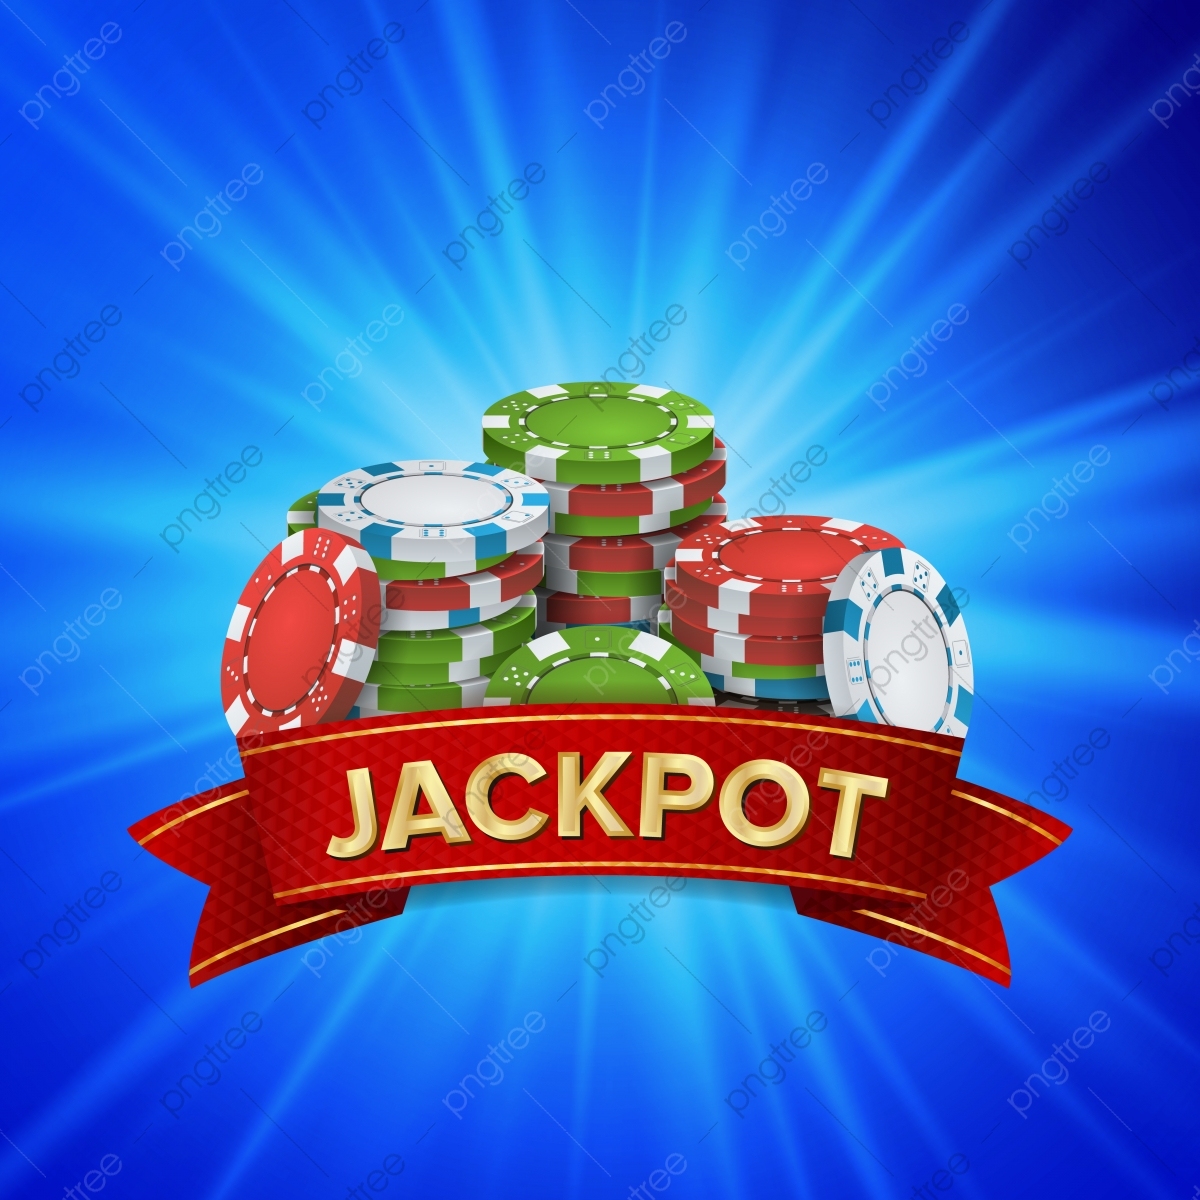 Jackpot Big Win Sign Vector Background Design For Online Casino Poker Roulette Slot Machines Playing Cards Mobile Game Casino Poker Chips Png And Vector With Transparent Background For Free Download